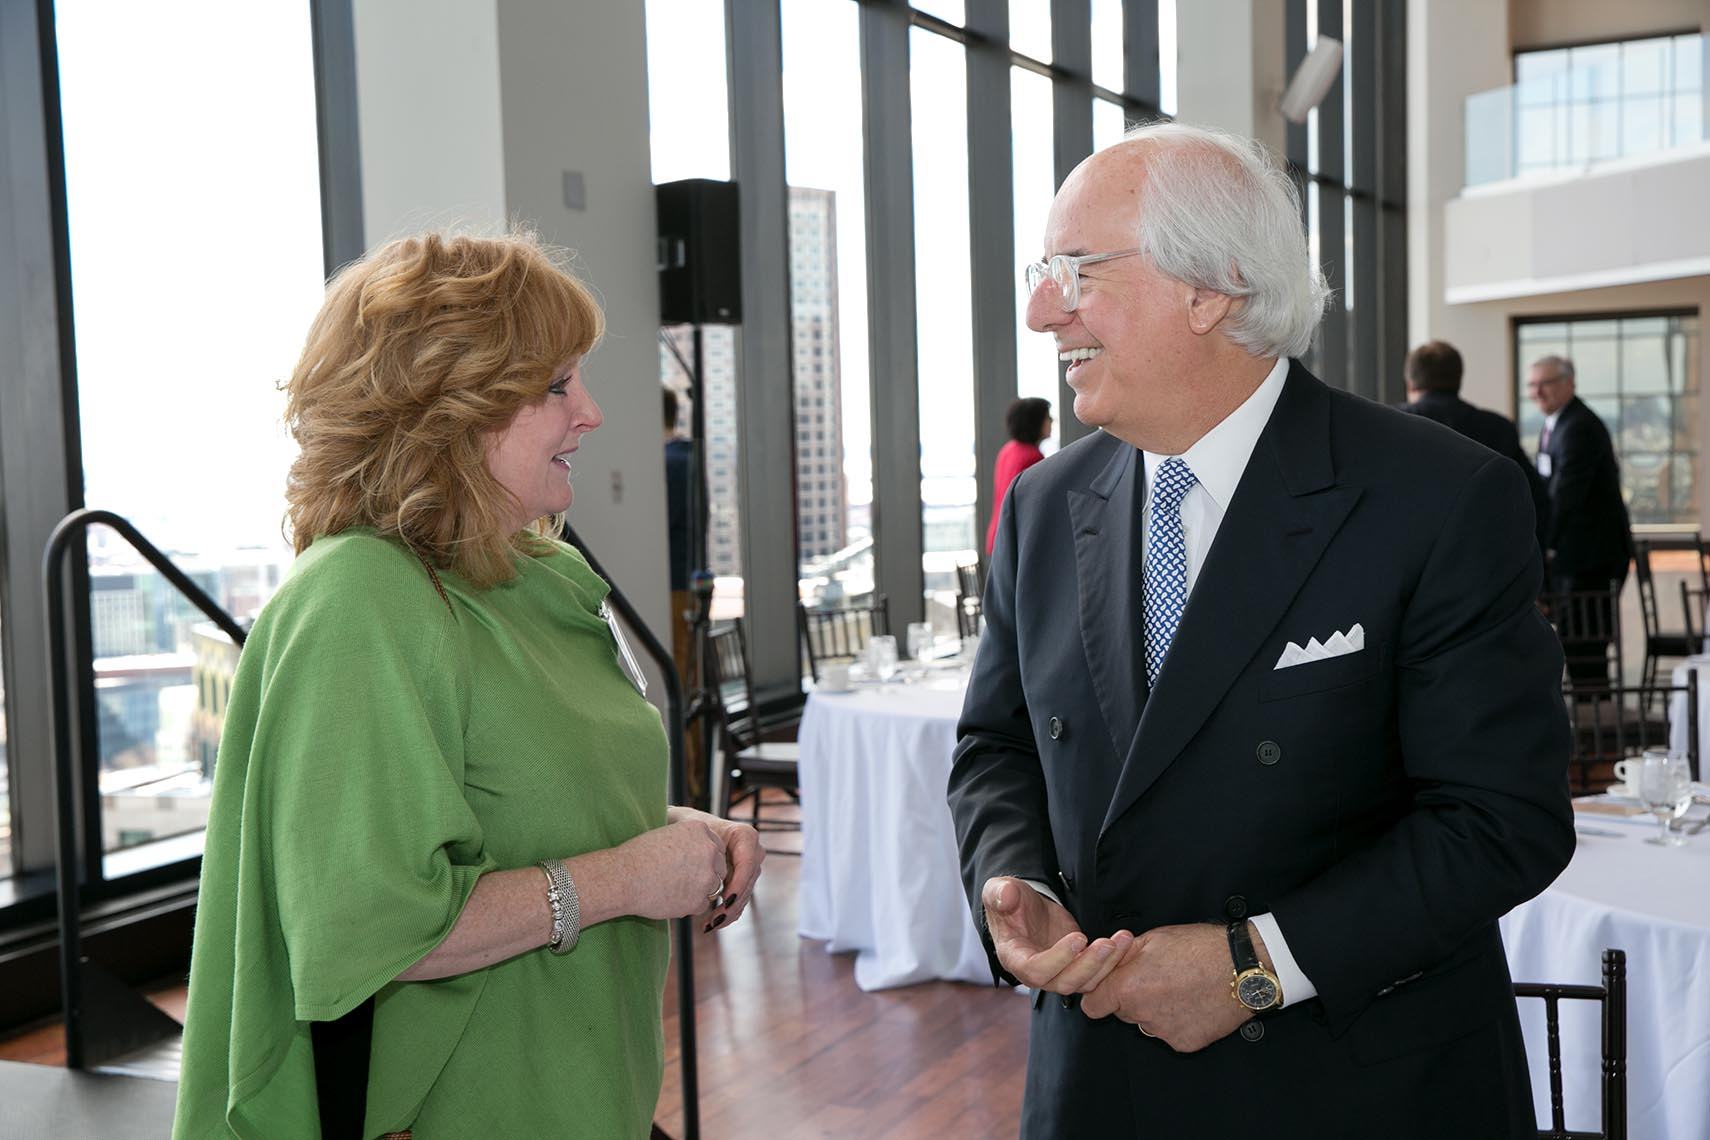 Member of the Association of Legal Administrators Speaking with Frank Abagnale Jr